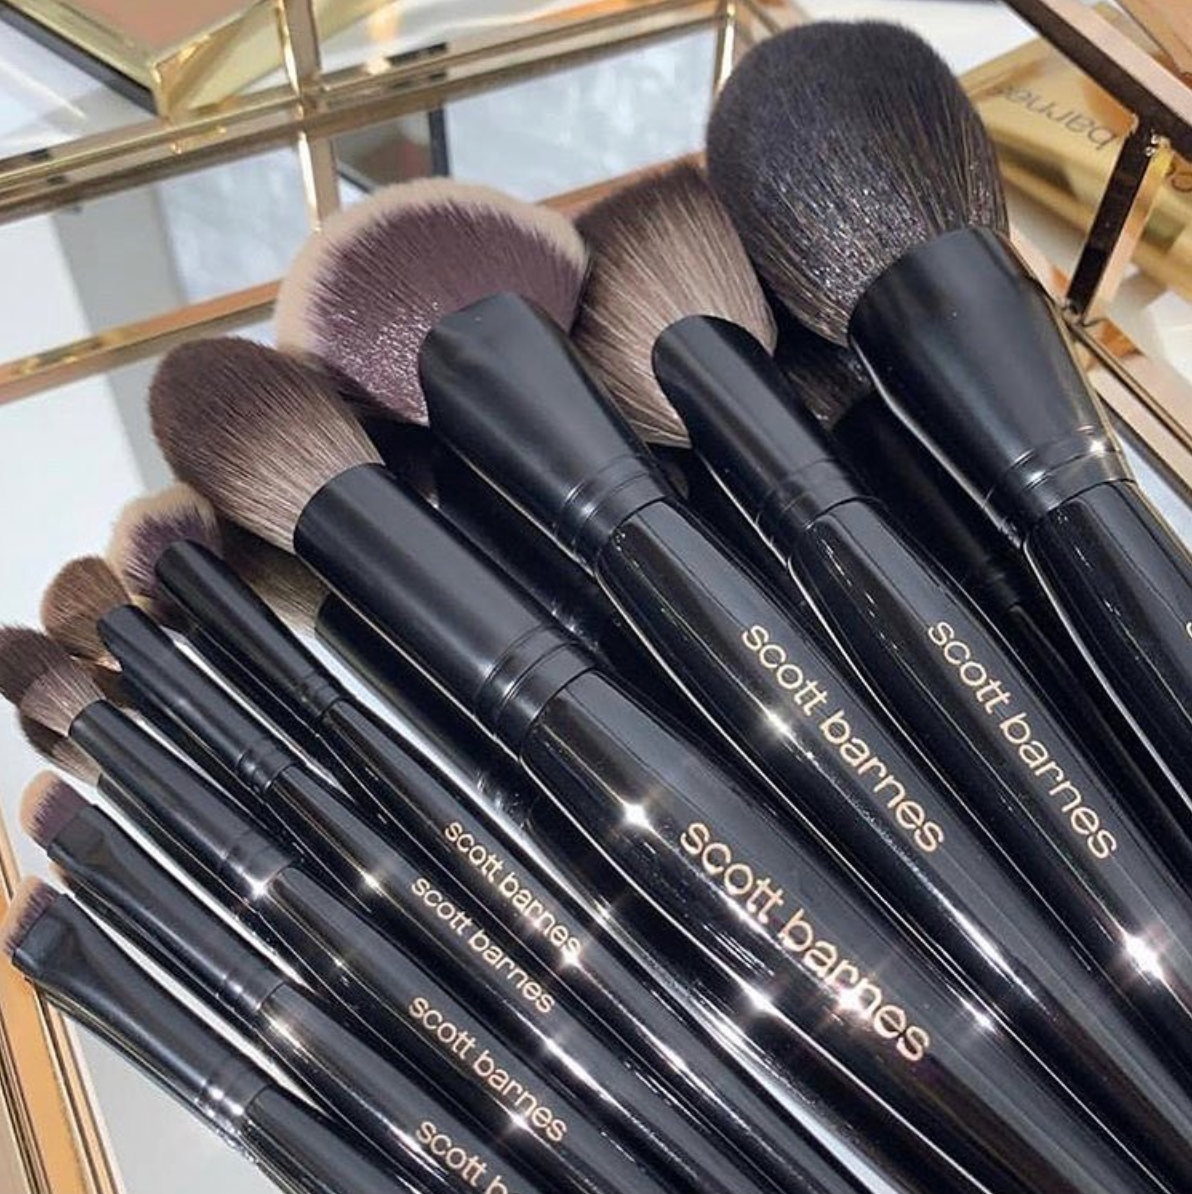 Your makeup will never be the same. Achieve maximum